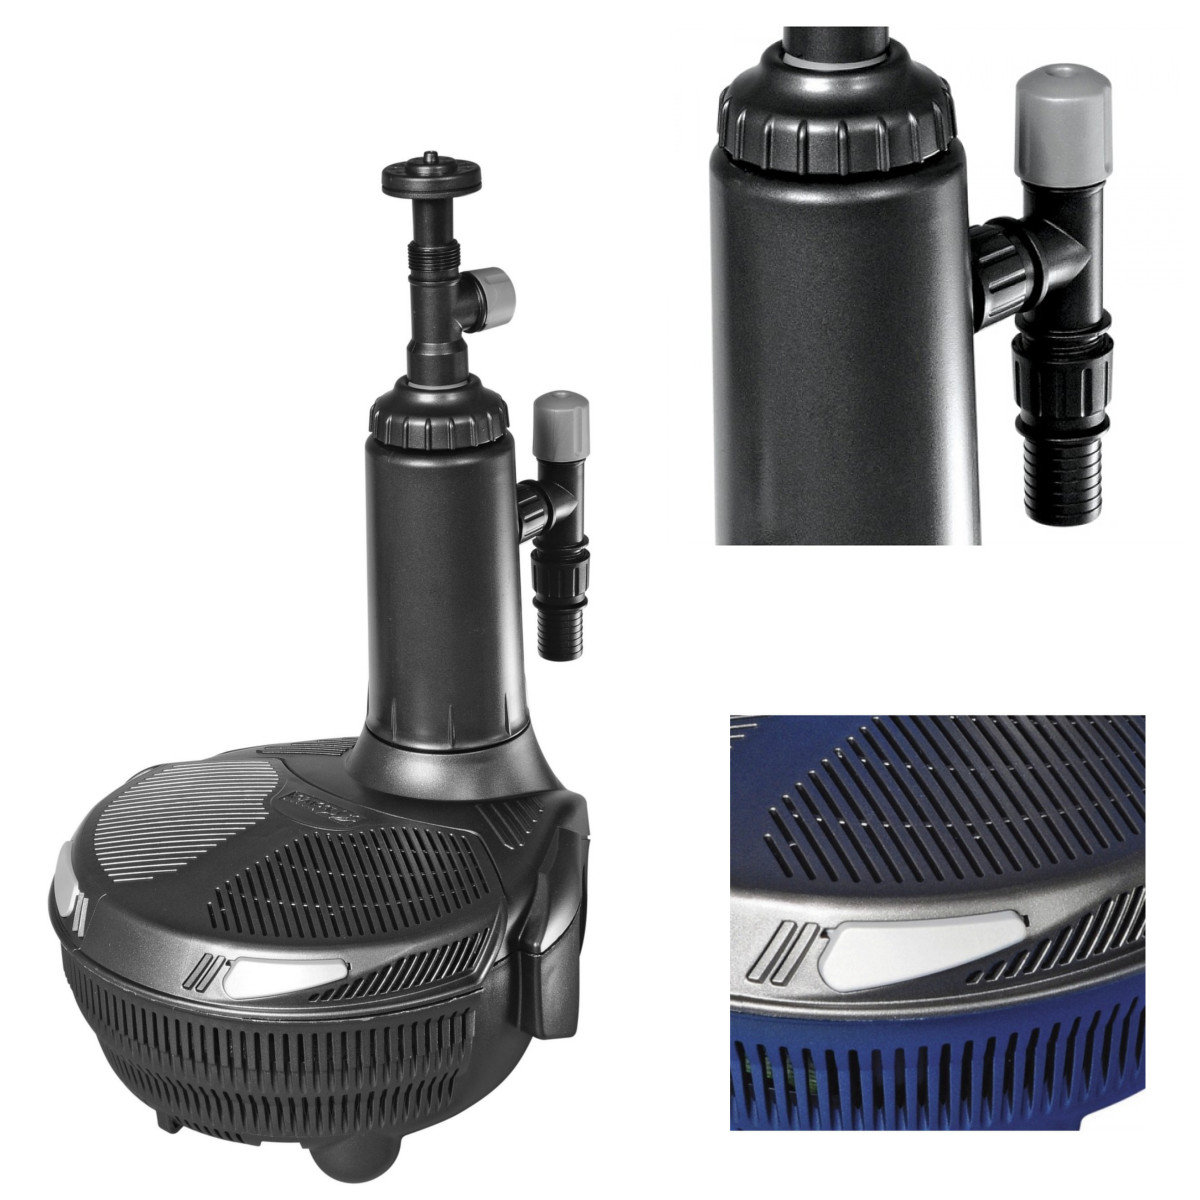 Hozelock easyclear systems fish pond all in one filter for Fish pond pumps and filters